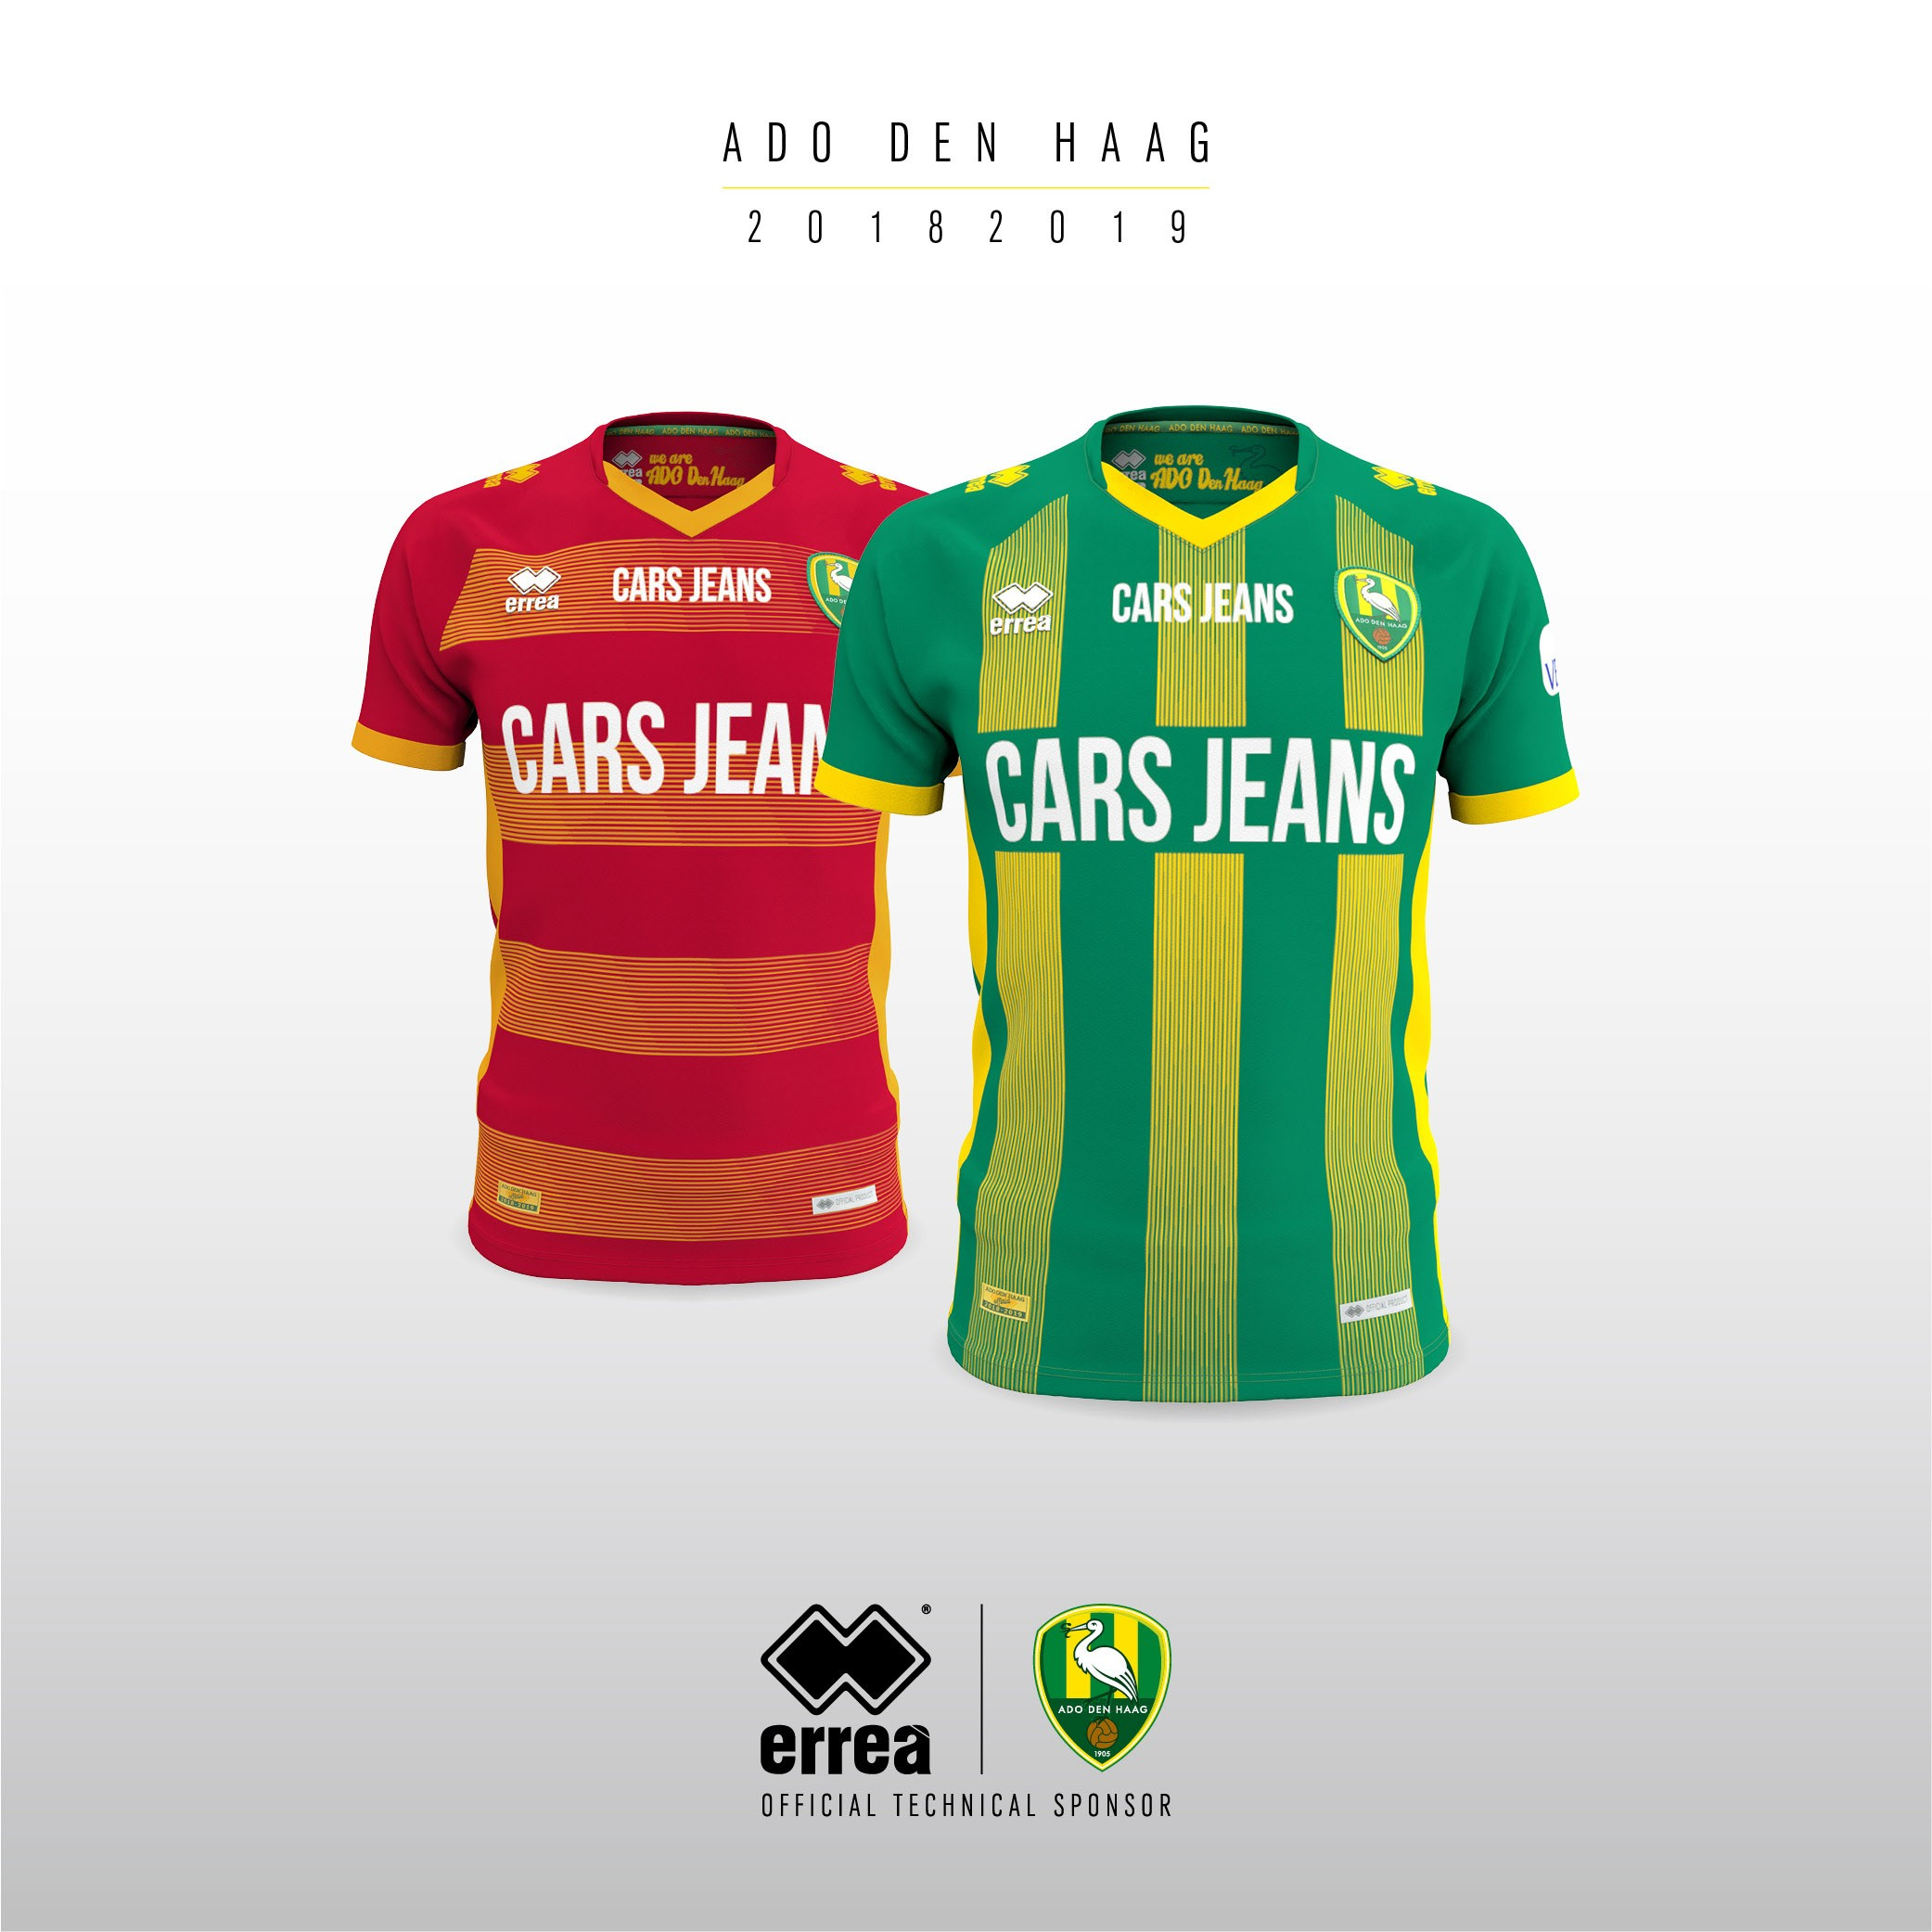 ADO Den Haag unveil their new kits created for the forthcoming 2018-2019 season by Erreà Sport